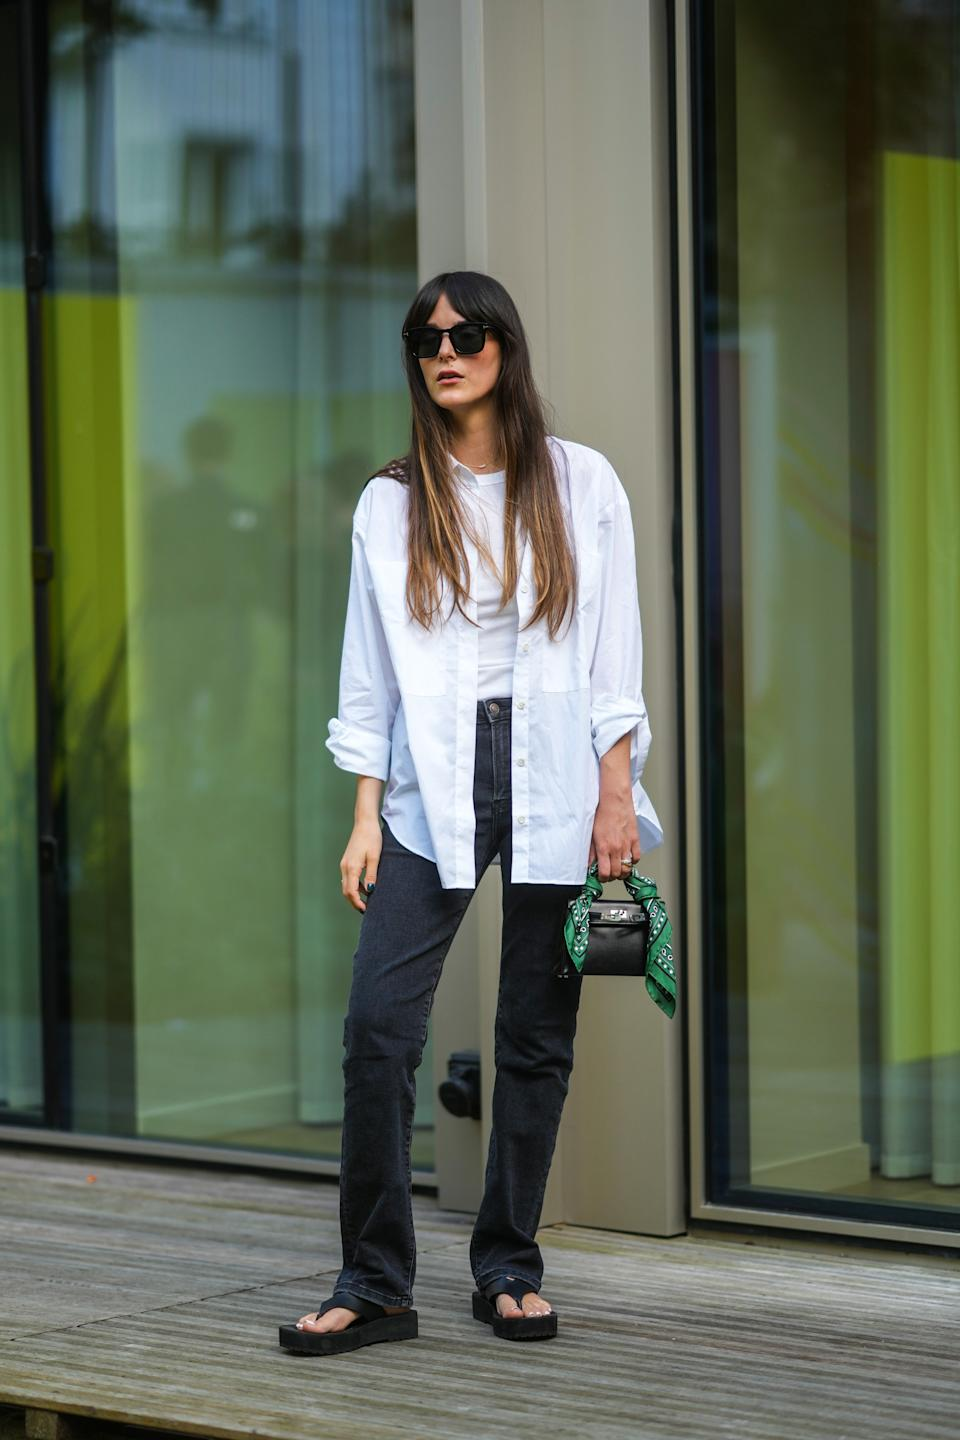 PARIS, FRANCE - JULY 01: Leia Sfez wears sunglasses, a white t-shirt, a white oversized shirt, black denim jeans pants, a black leather mini Hermes Kelly bag with attached green scarf, sandals / flip-flops, during the Twilly By Hermes : Launch Party In Paris, on July 01, 2021 in Paris, France. (Photo by Edward Berthelot/Getty Images)